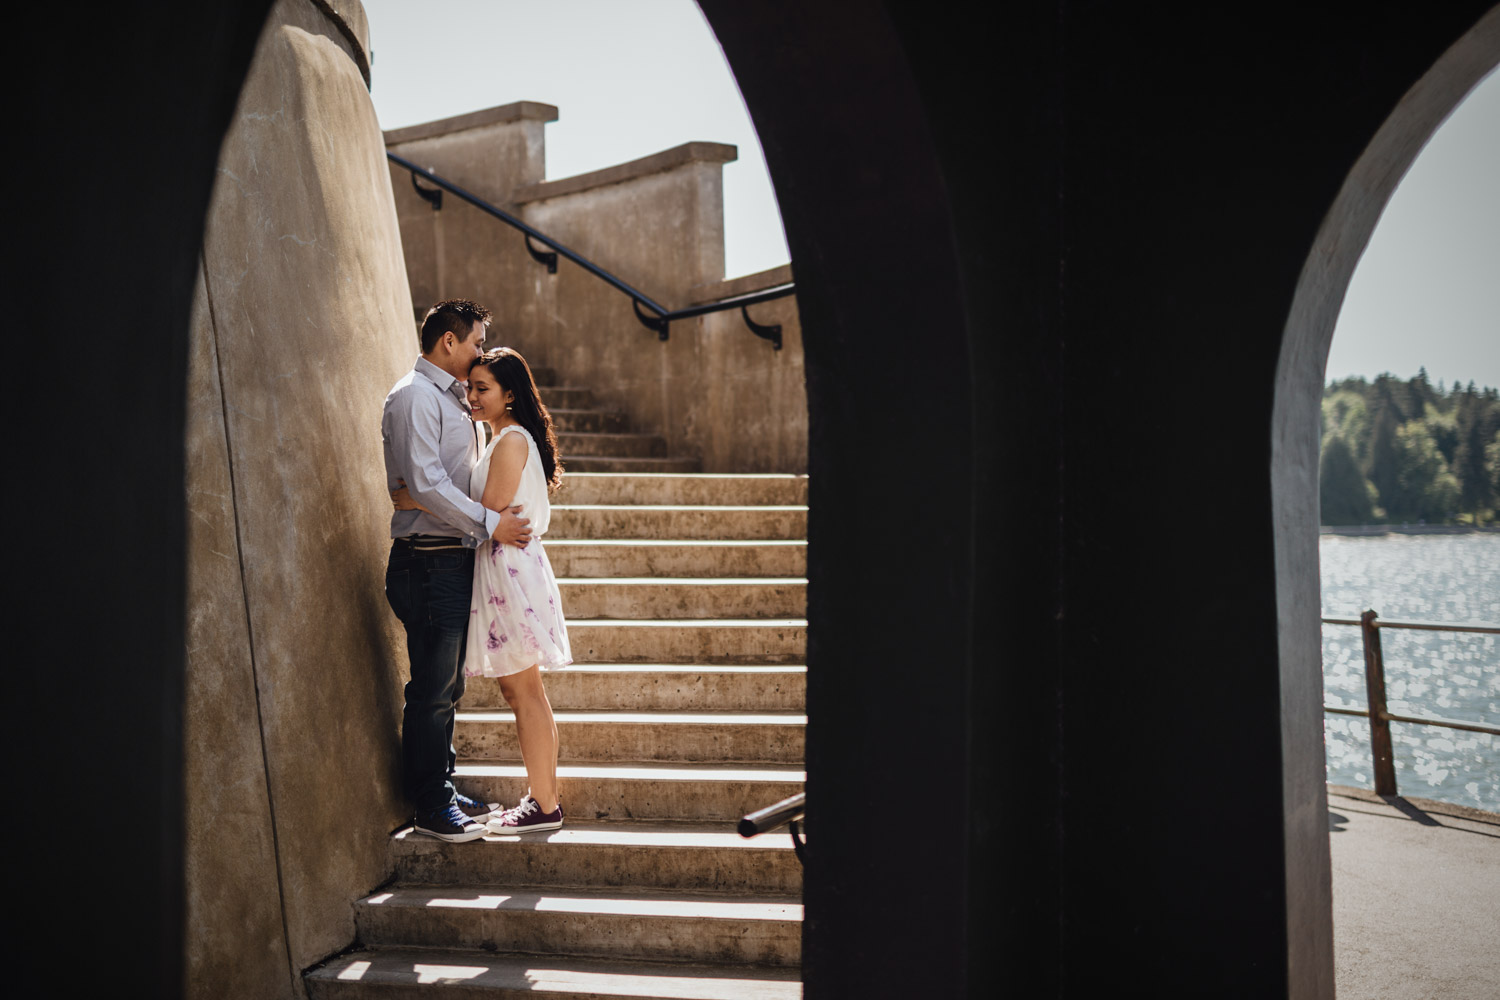 stanley park engagement photography at brockton point lighthouse vancouver bc